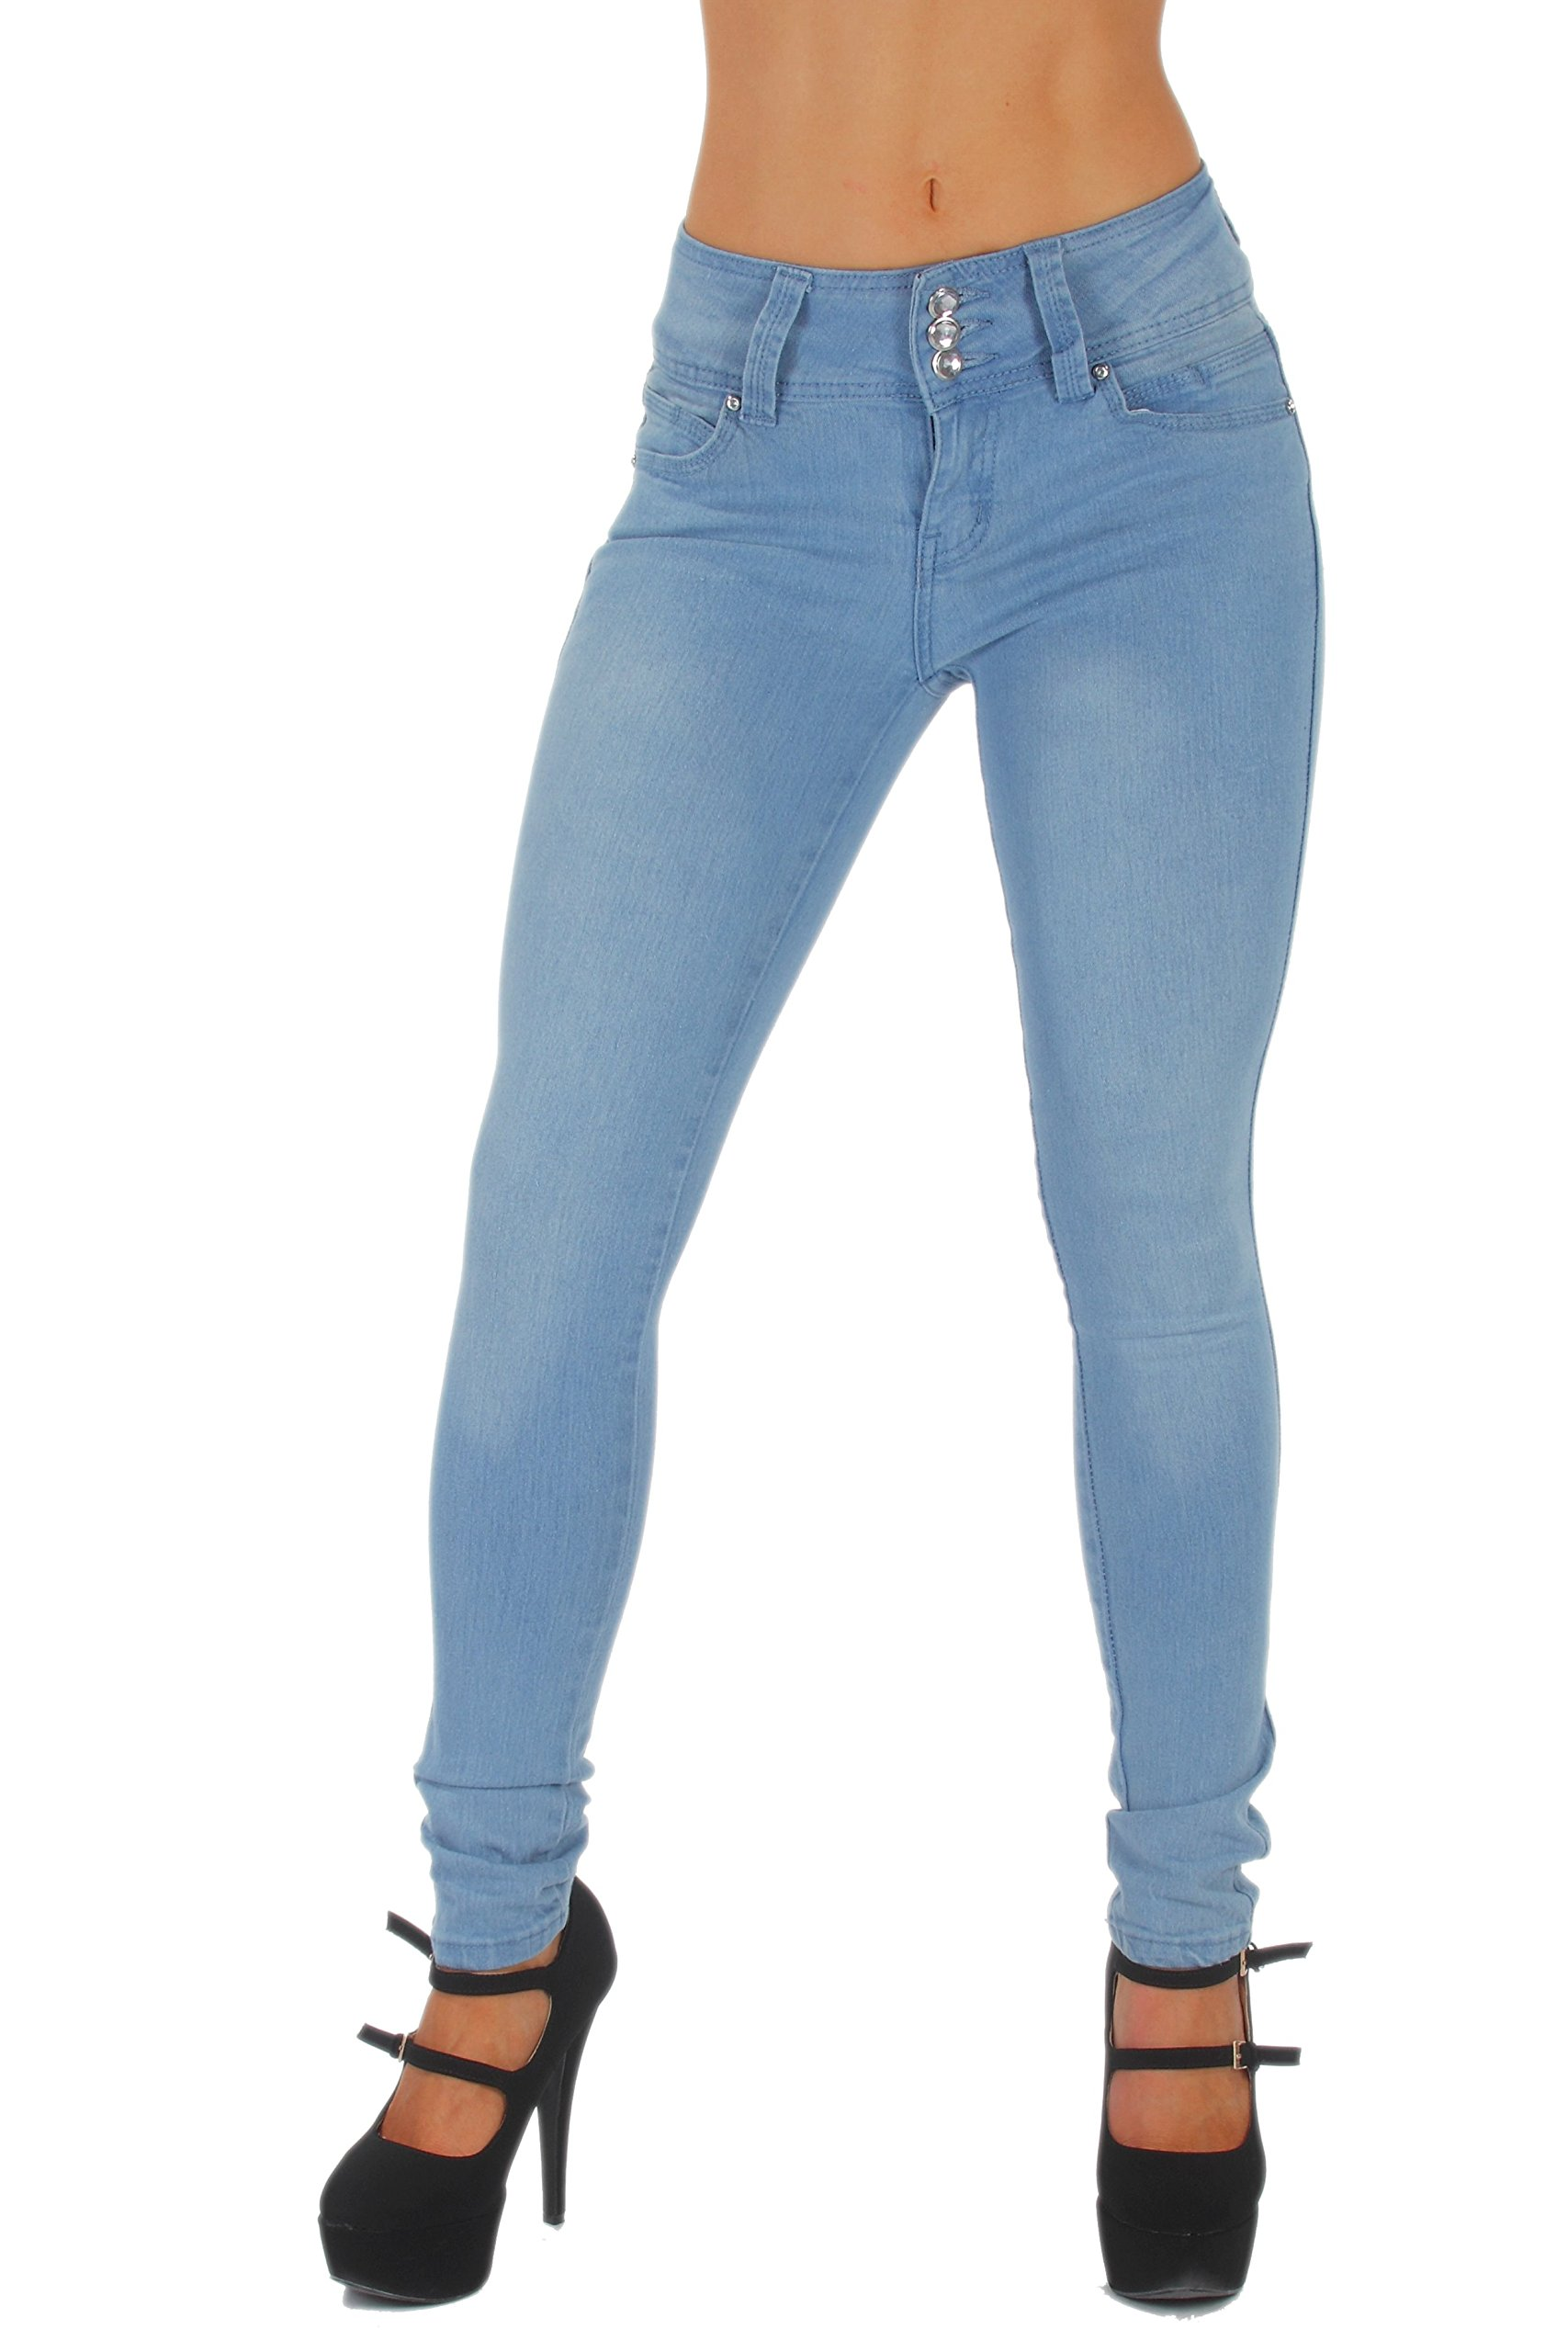 Fashion2Love Style B925K– Colombian Design, Butt Lift, Levanta Cola, Skinny Jeans in Light Blue Size 9